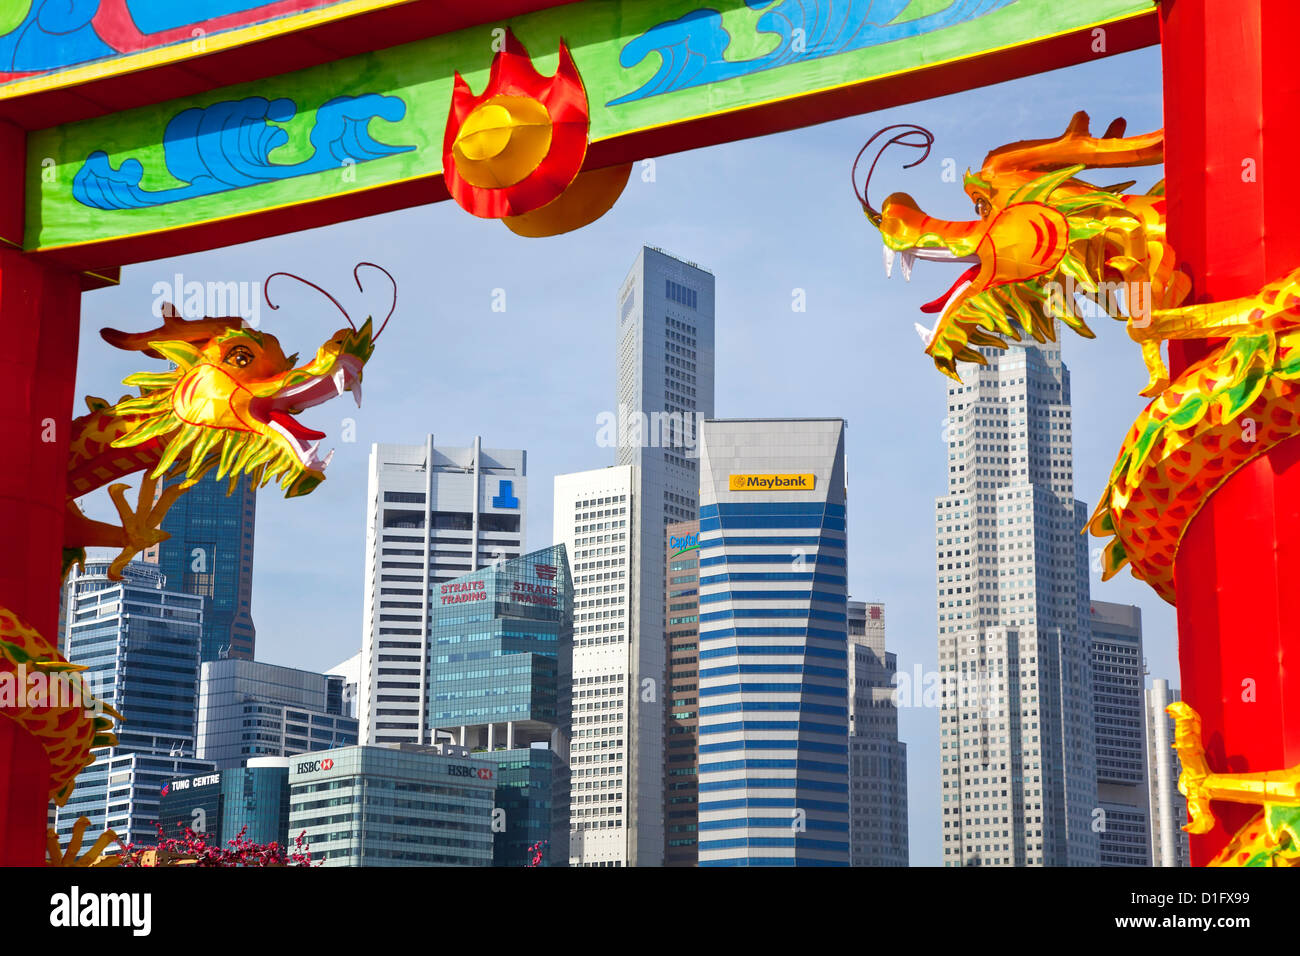 Skyline und Bankenviertels, Singapur, Südostasien, Asien Stockbild